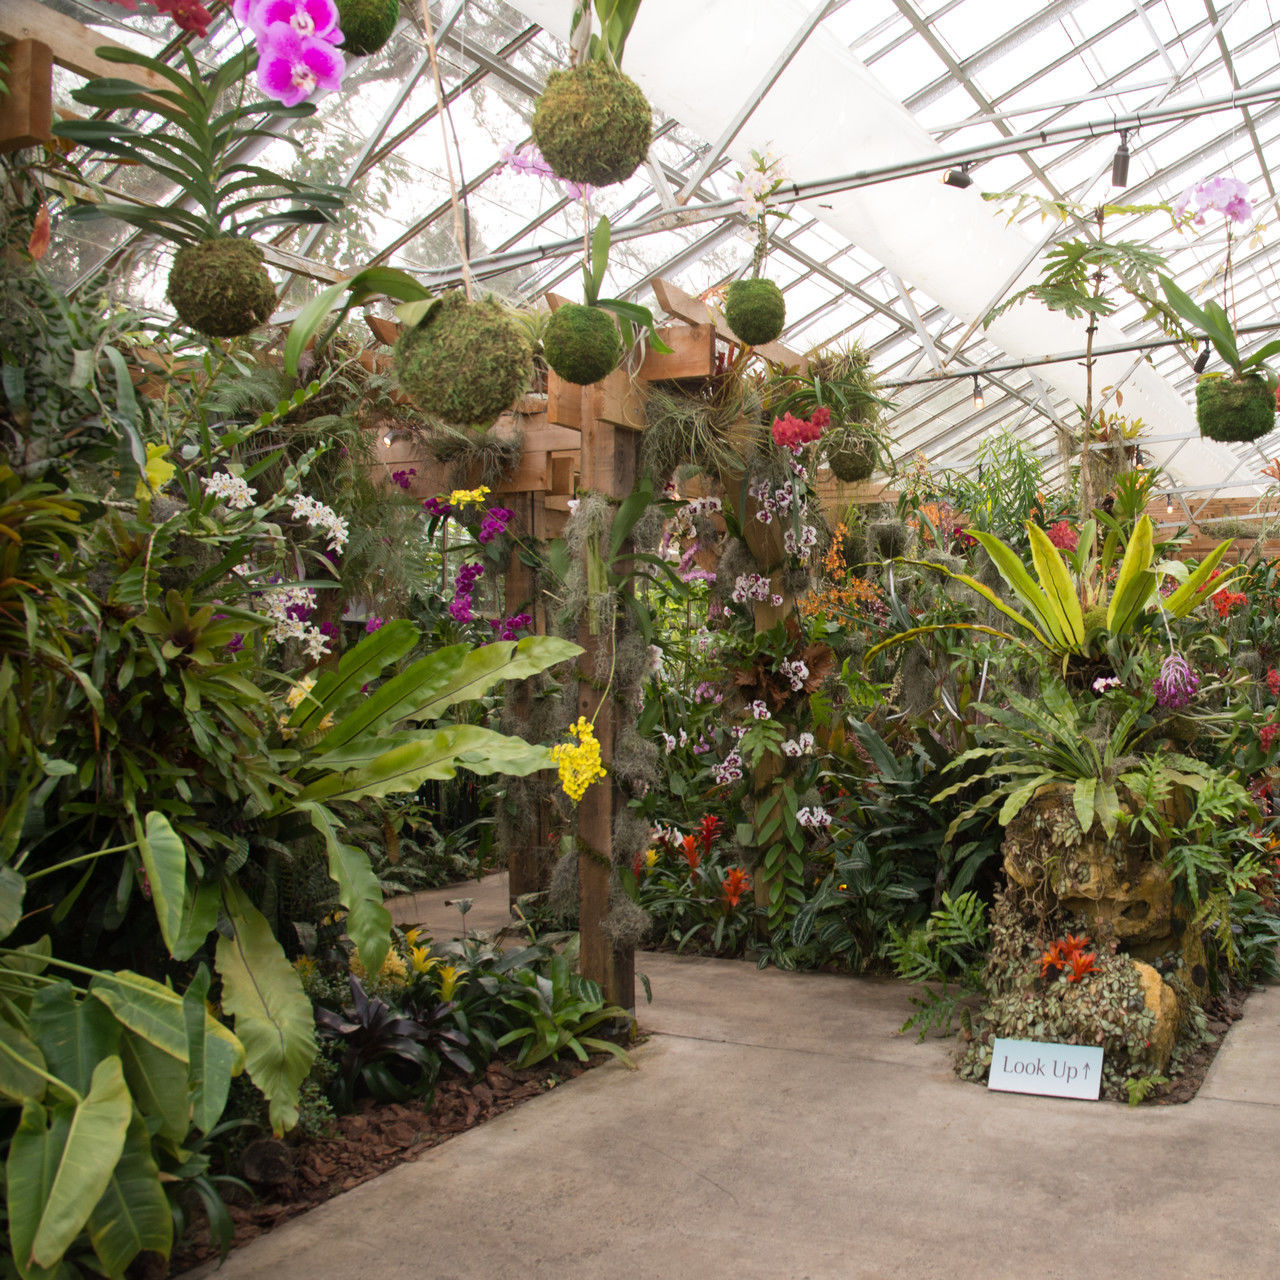 Selby gardens orchidshow 2016 0437 wmn0wn